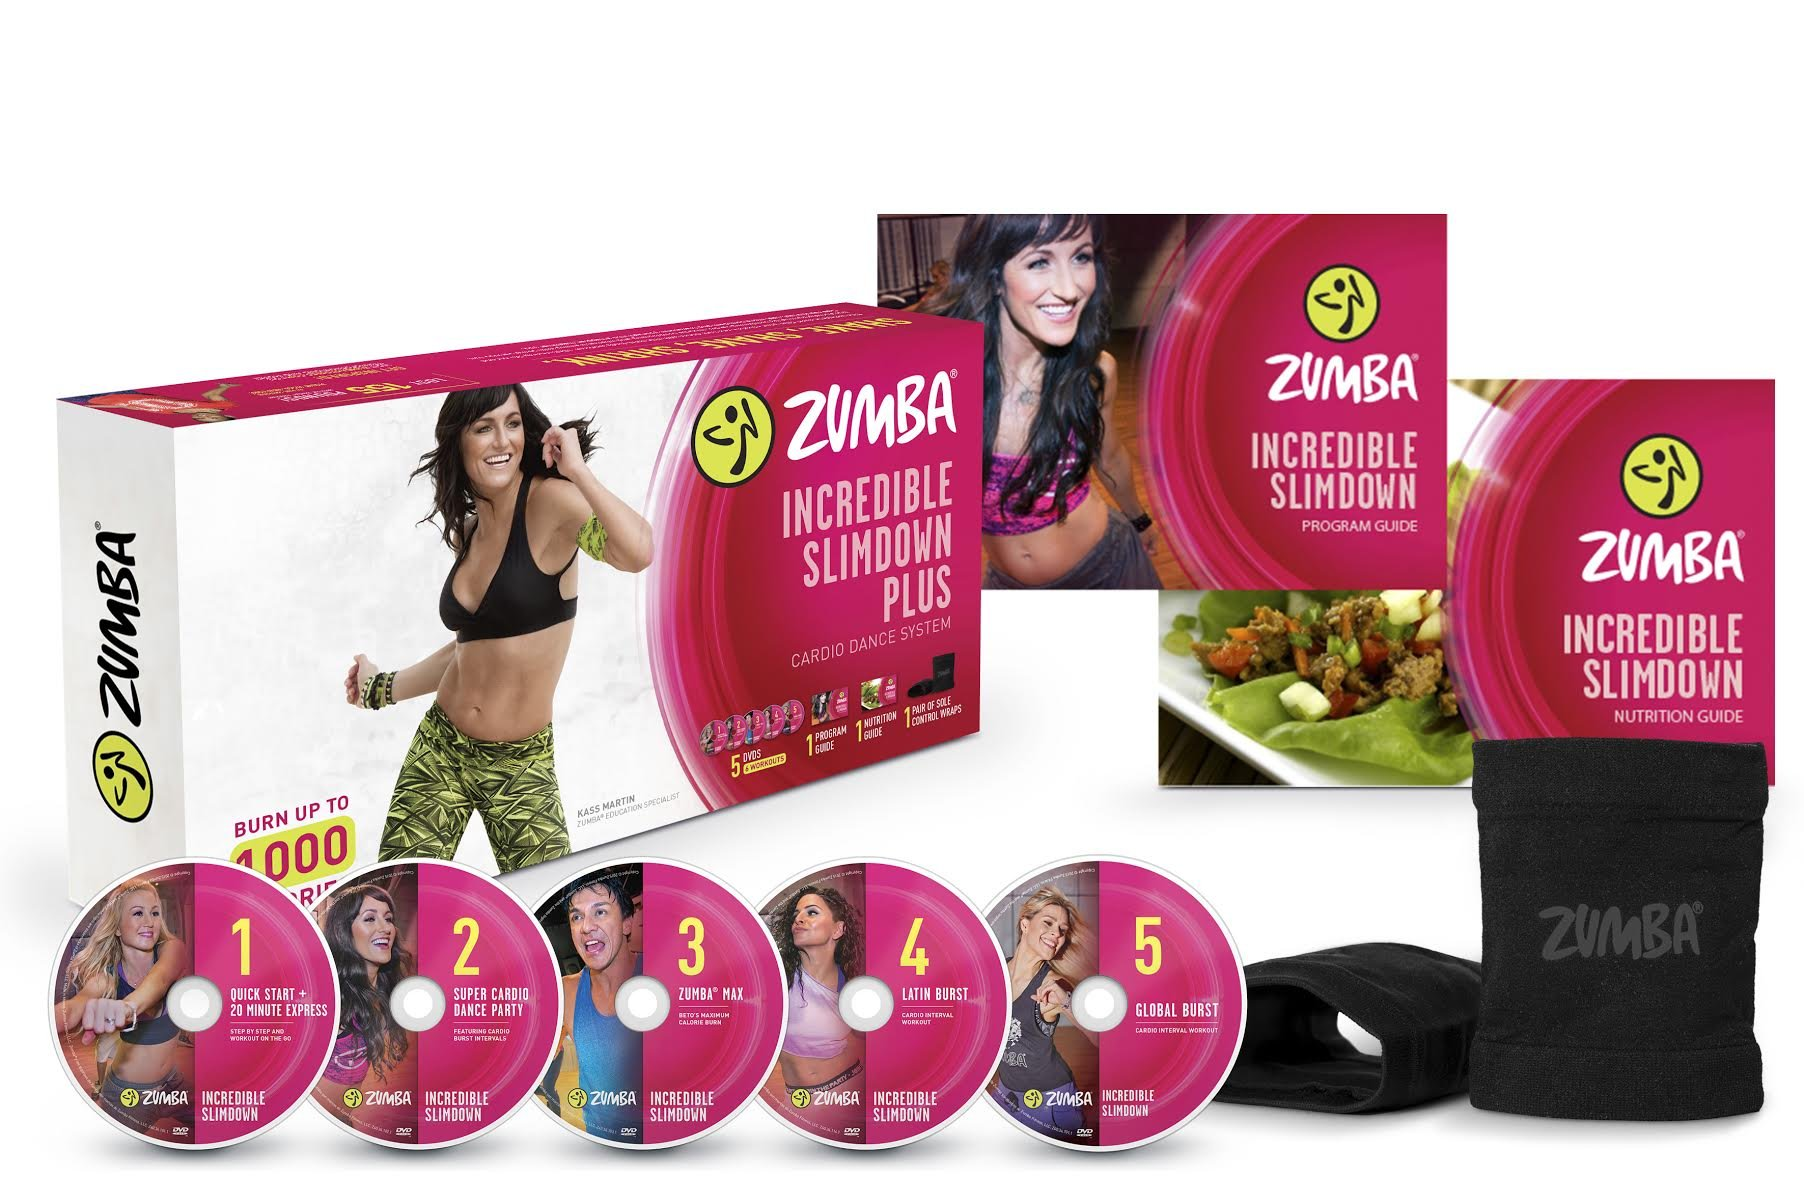 21 day elimination diet meal plan photo 8